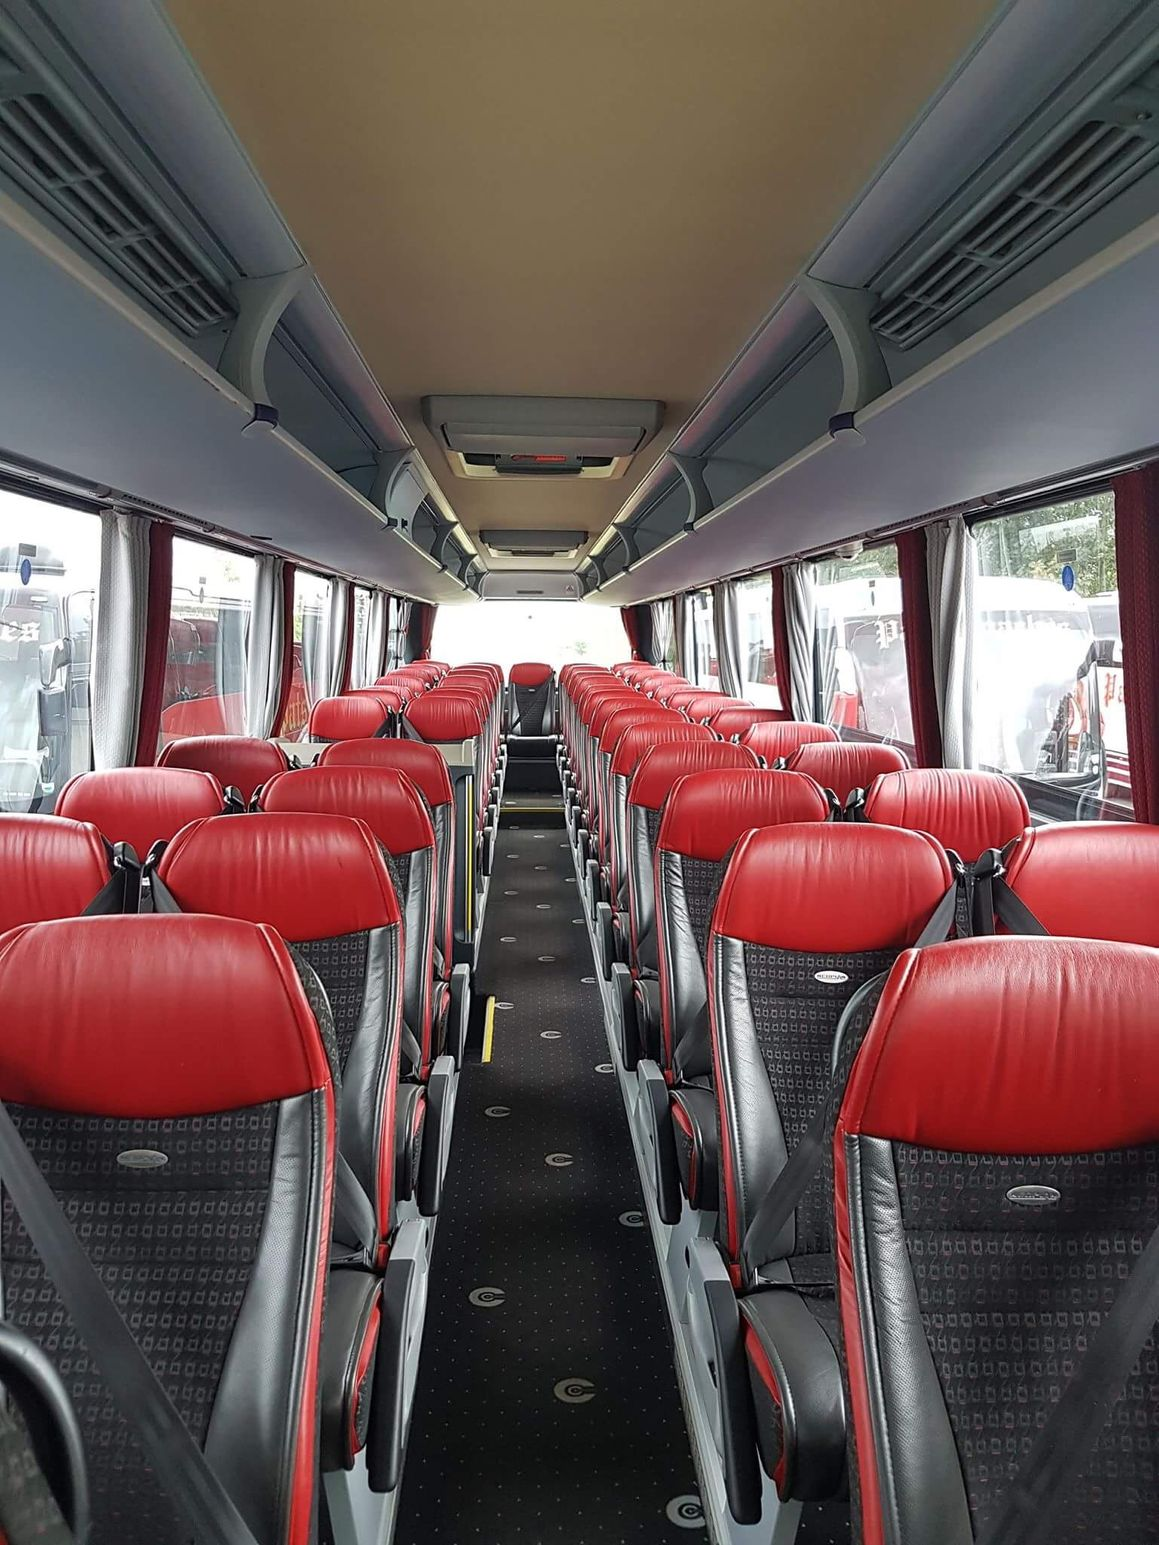 Coach Hire Wrexham, Mini bus hire wrexham, Buses wrexham,